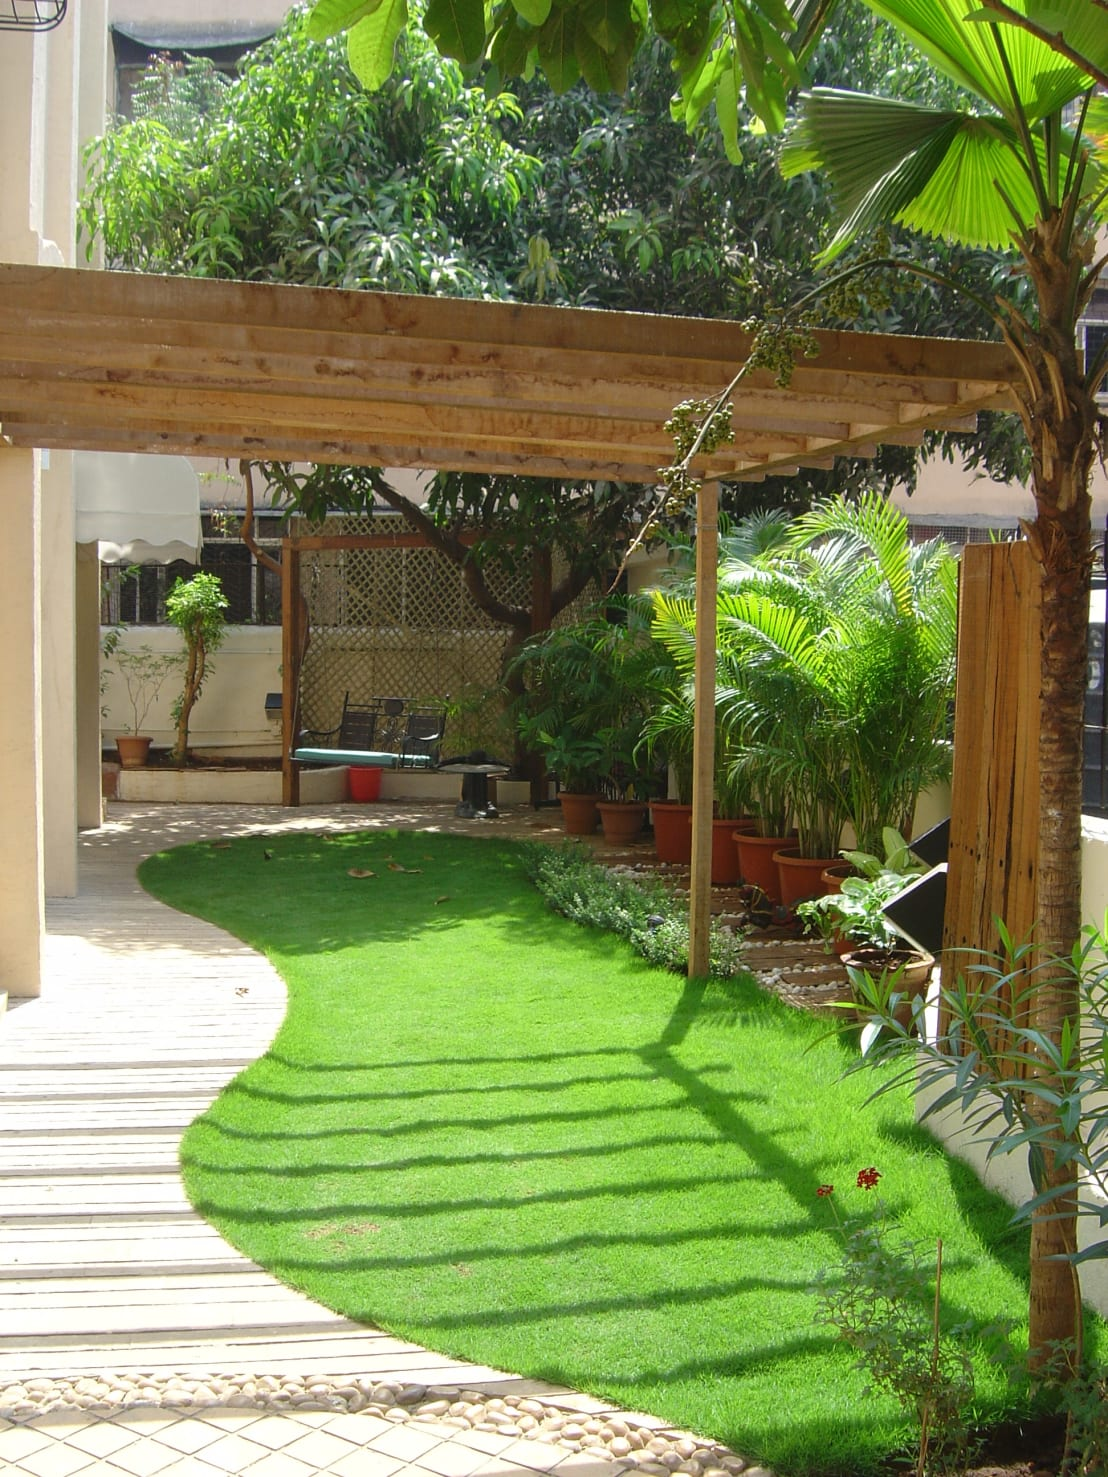 Enamour Tropical Garden By Land Design Landscape Architects Land Design Landscape Landscape Architects Mumbai Land Images Landscape Architecture Lawn Area outdoor Land Images Landscaping